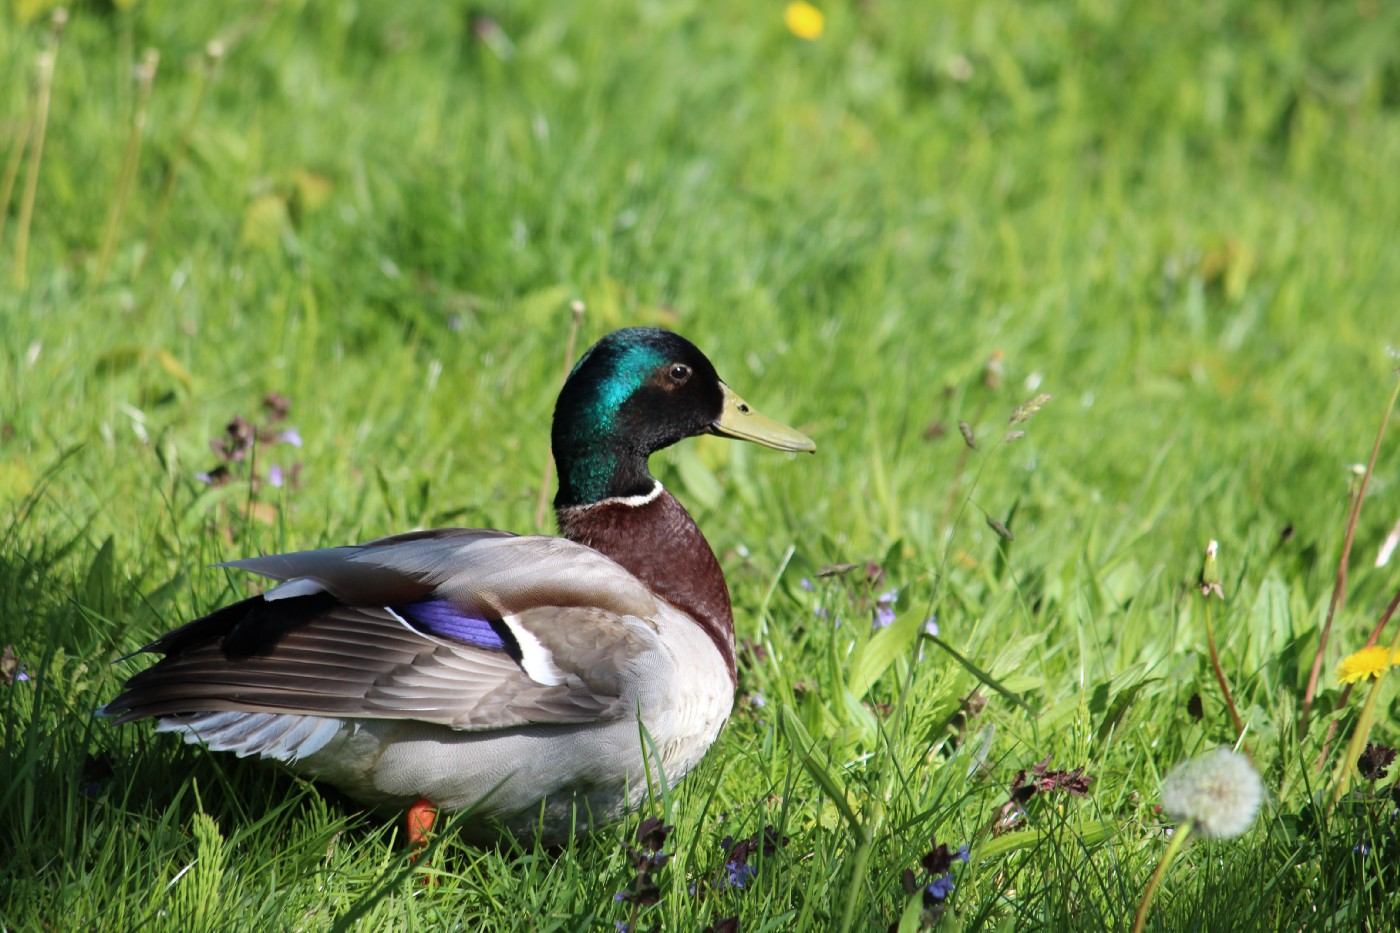 Mallard male duck in grass